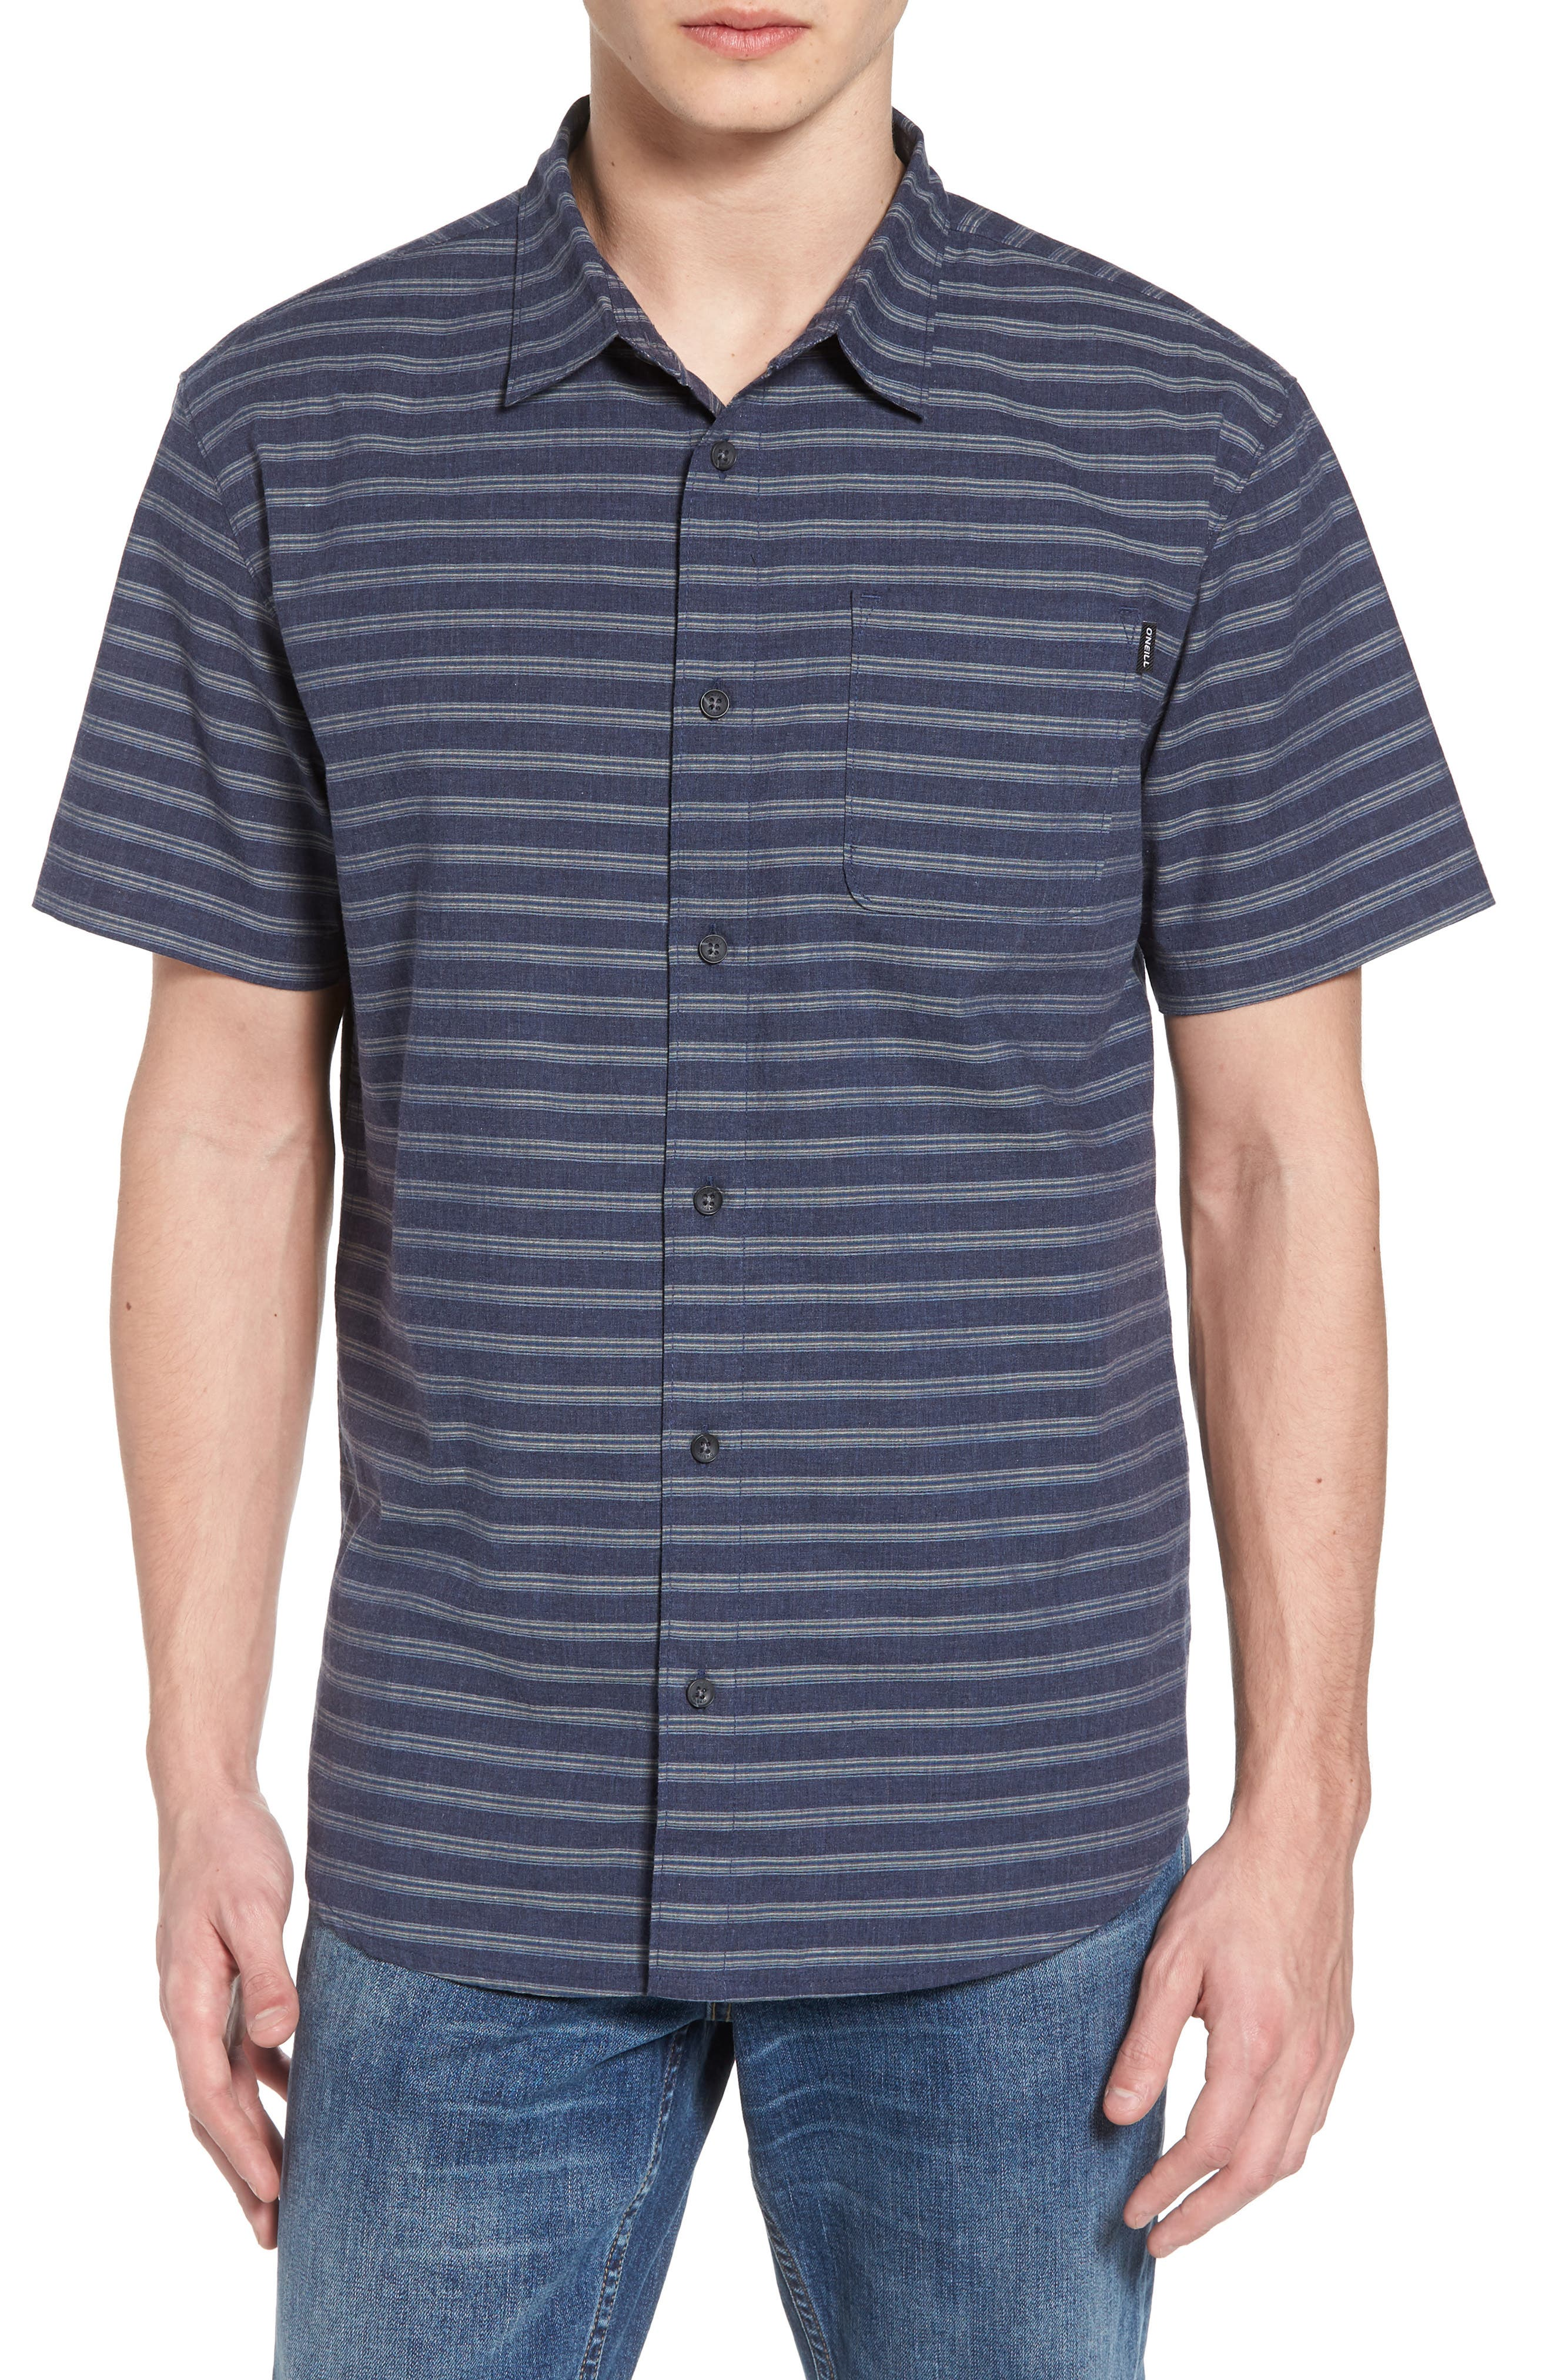 Stag Short Sleeve Shirt,                         Main,                         color,